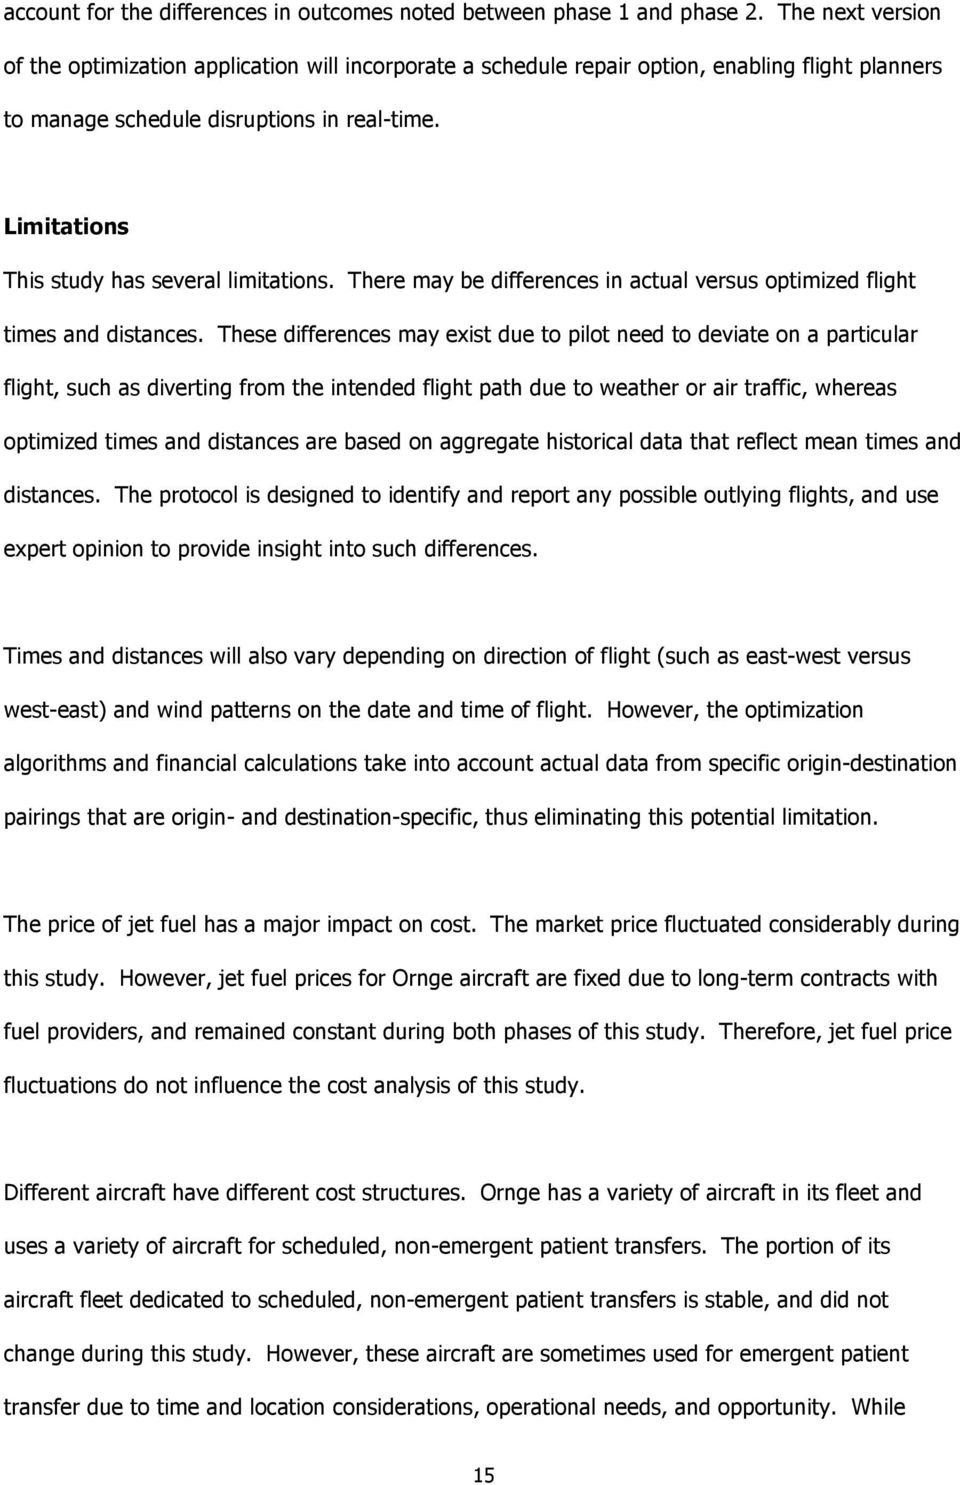 Limitations This study has several limitations. There may be differences in actual versus optimized flight times and distances.